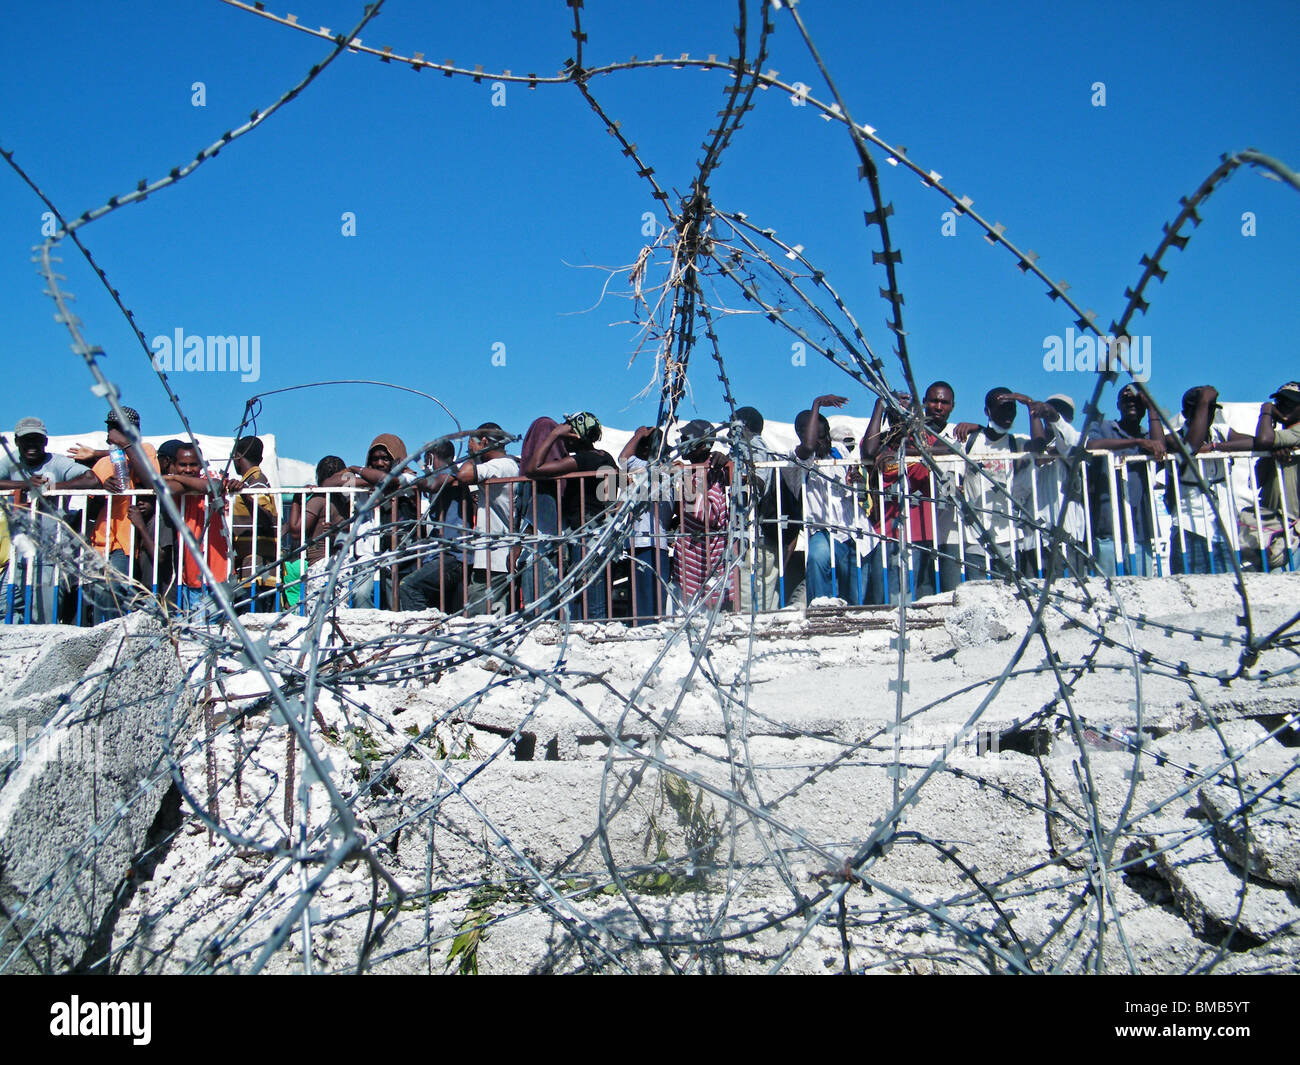 Survivors of the Haiti earthquake wait for food and water in Port au Prince - Stock Image